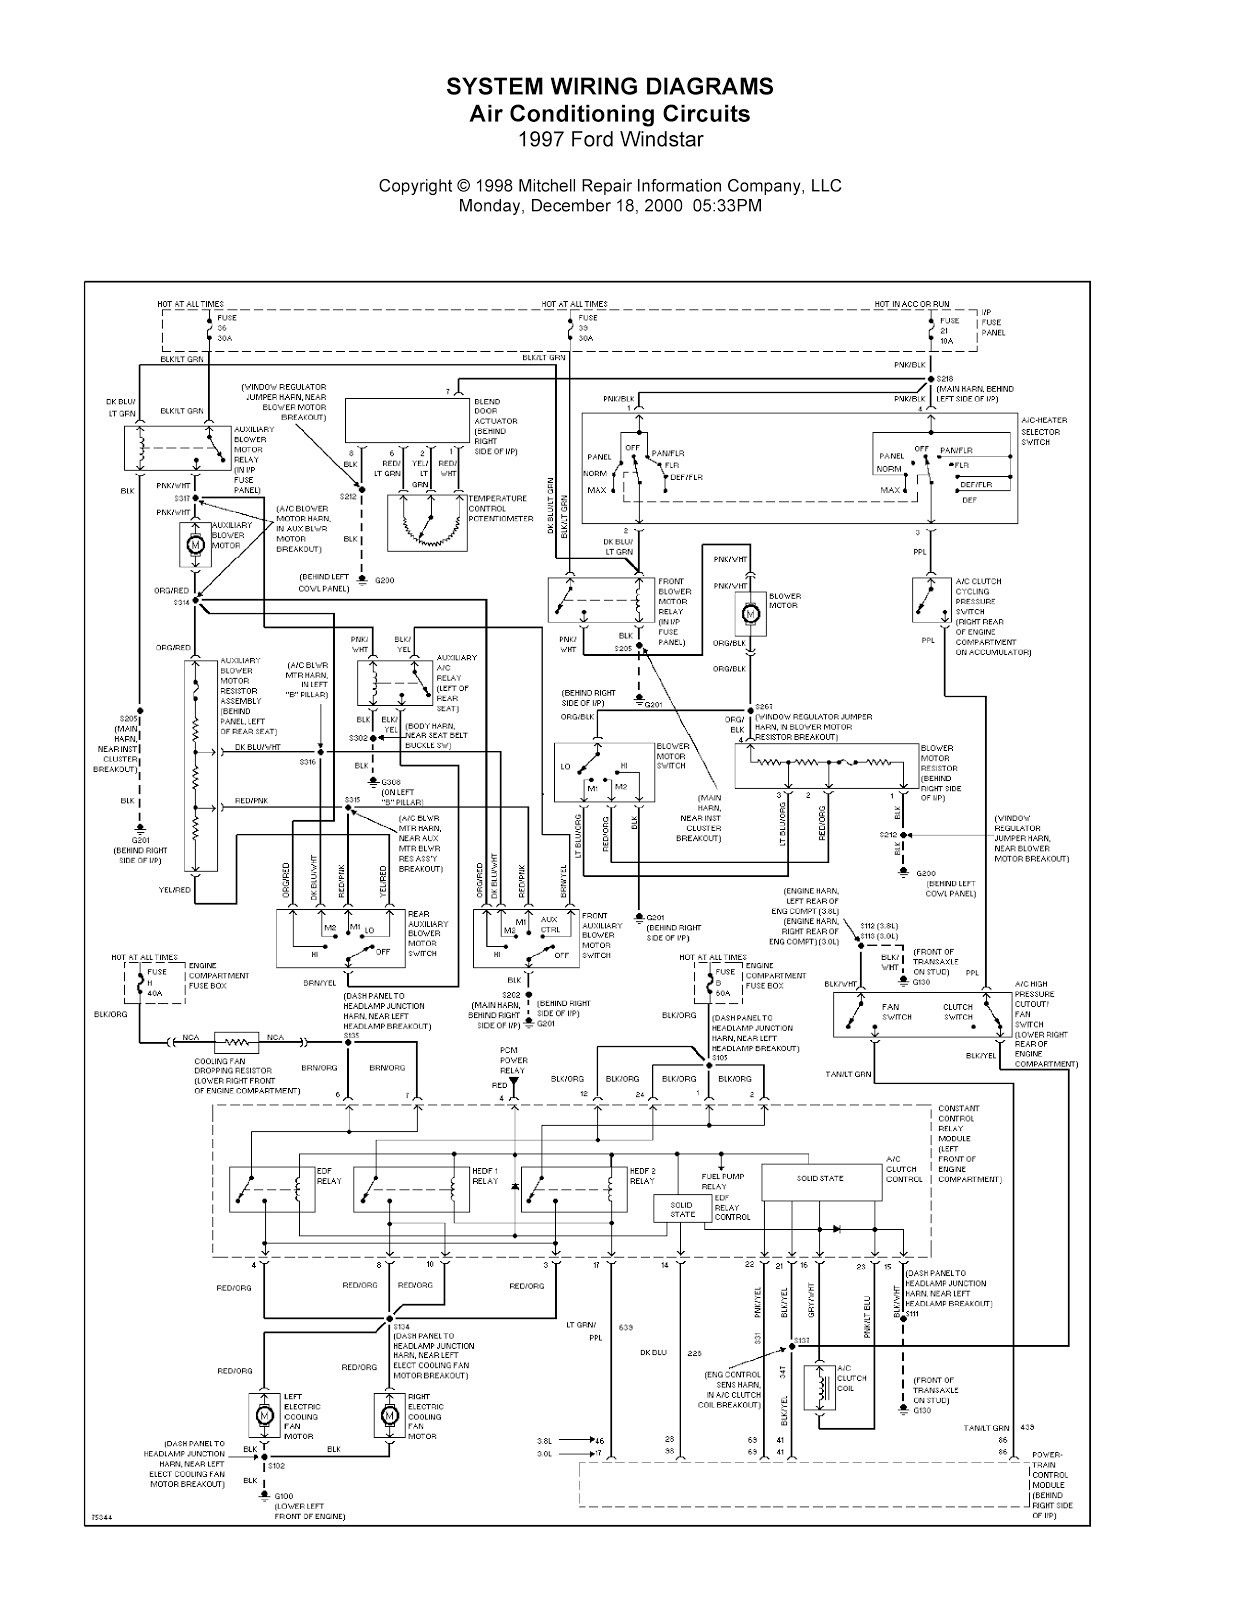 2001 ford explorer engine diagram my wiring diagram rh detoxicrecenze com  2002 Ford Windstar Fuse Panel